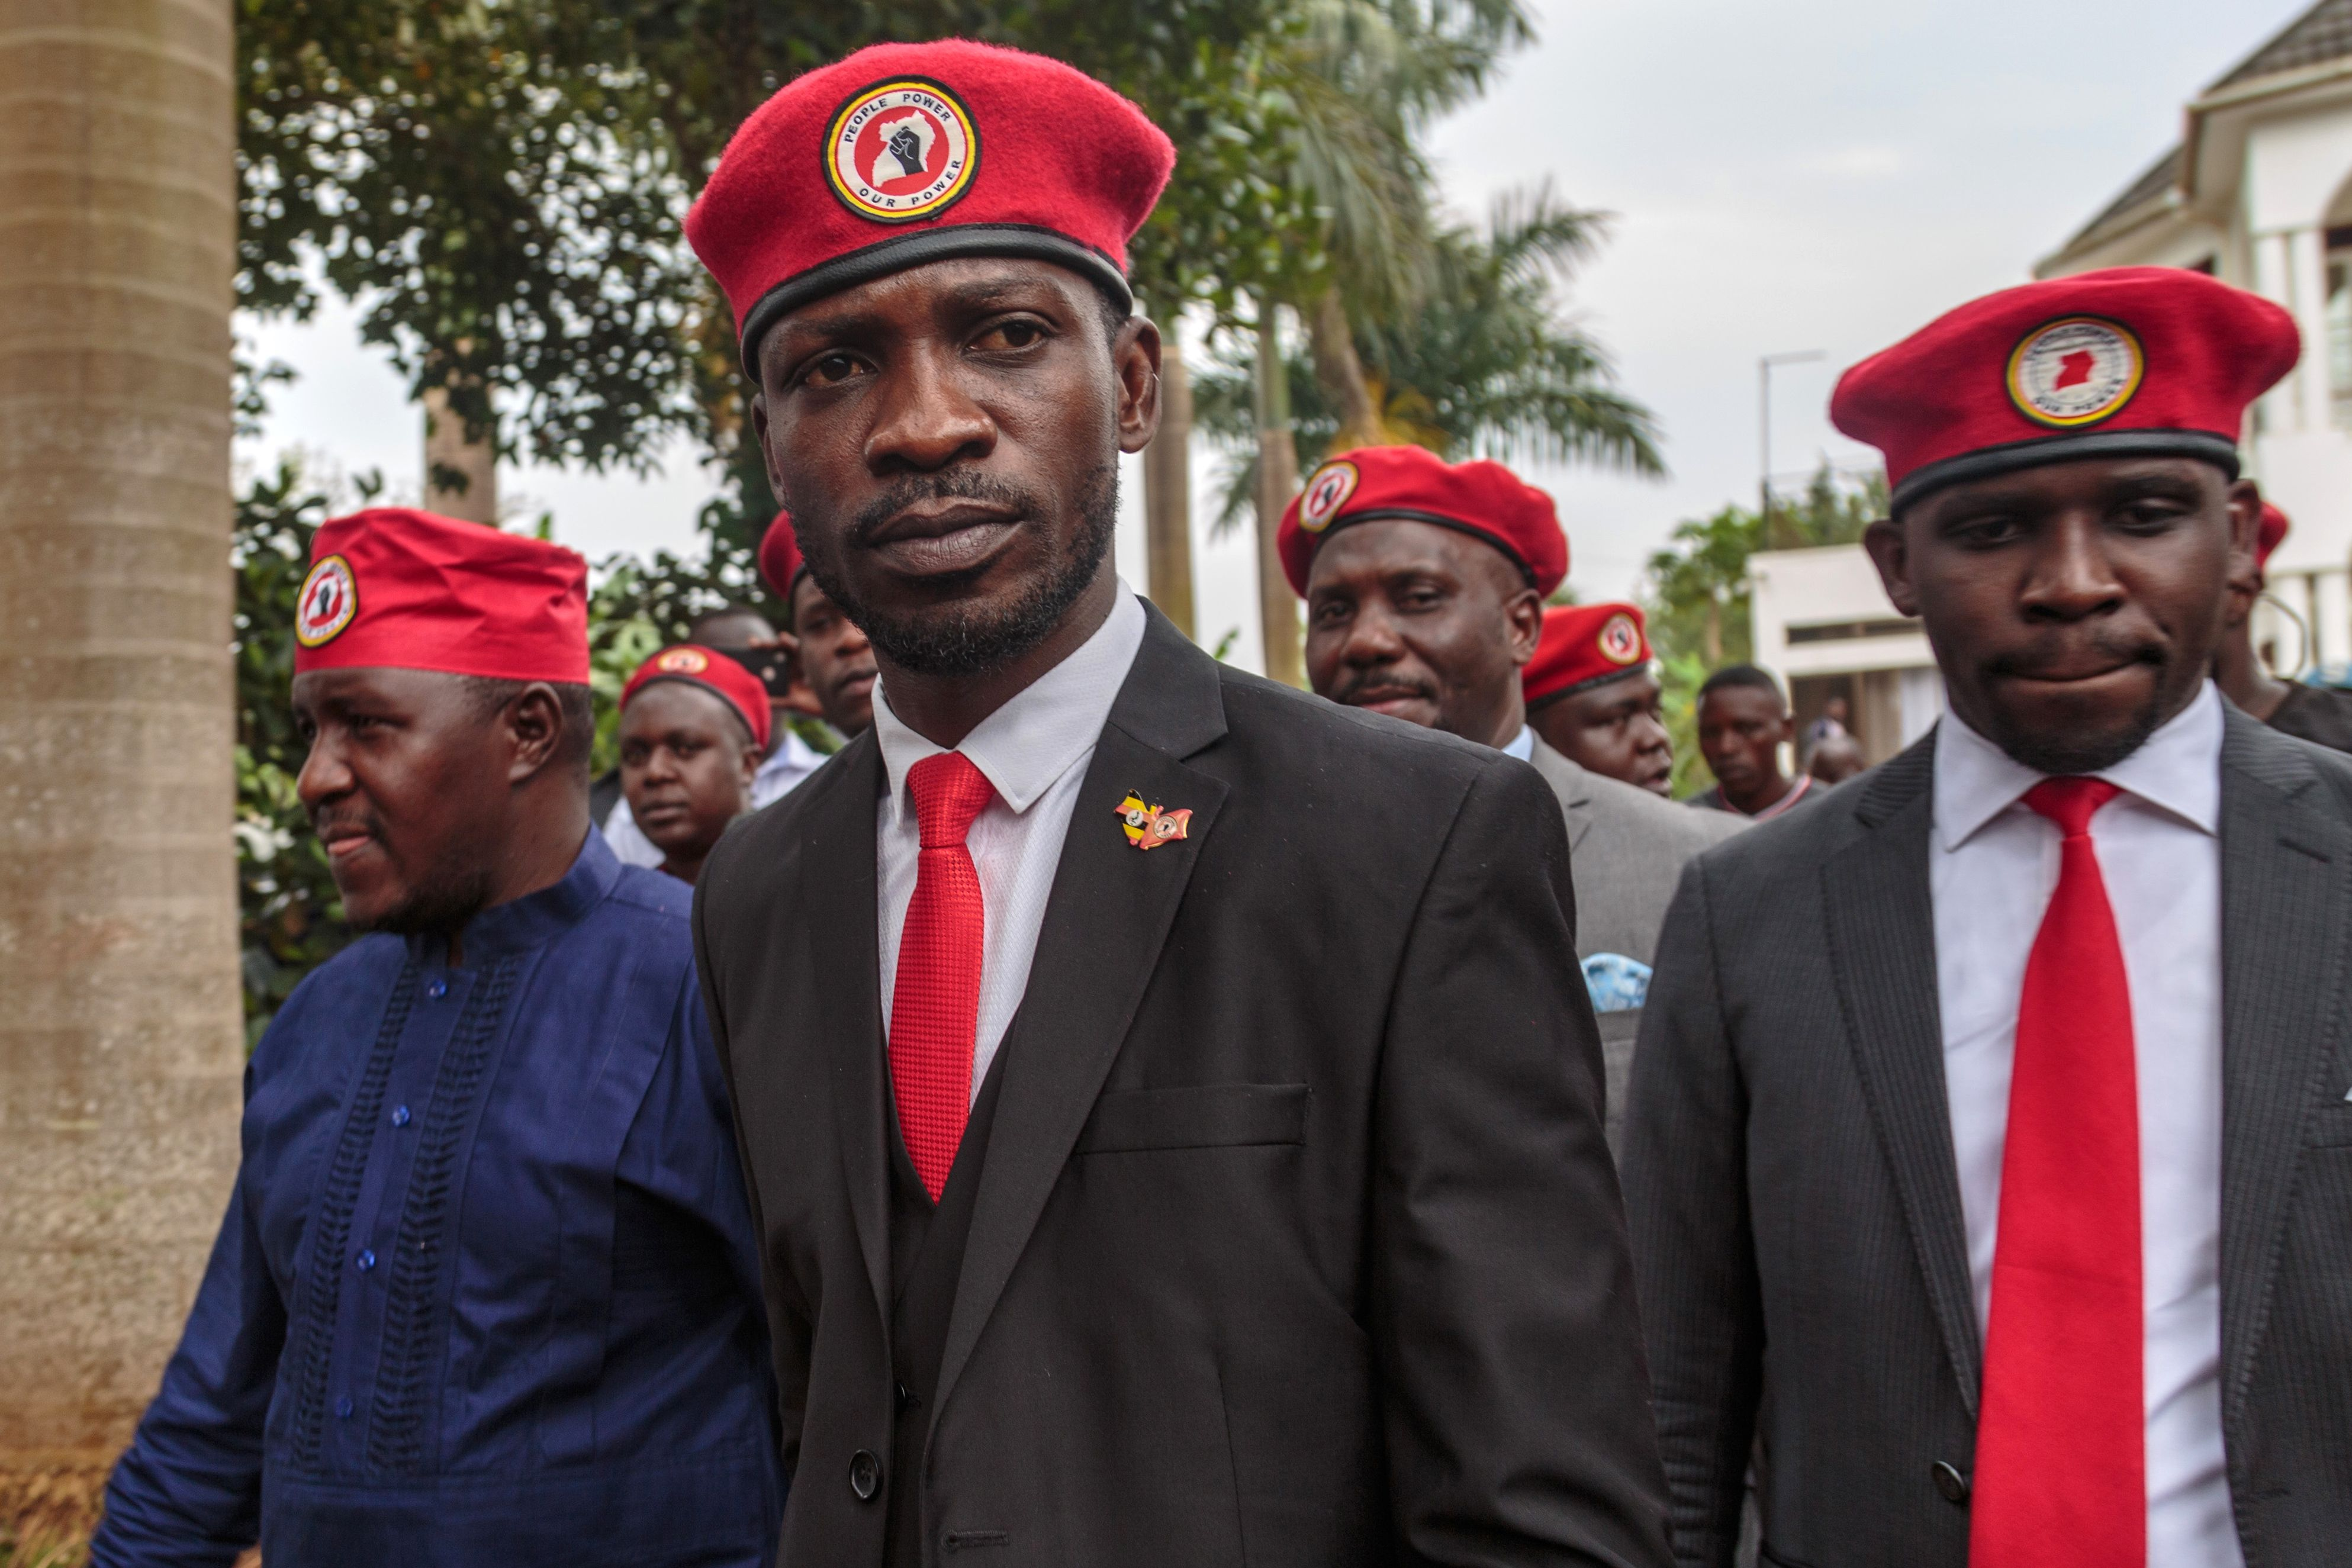 Singer turned politician Robert Kyagulanyi, also known as Bobi Wine arrives for a press conference, held at his home in Magere in the outskirts of Kampala, on July 24, 2019. - Ugandan pop star turned leading opposition figure Bobi Wine on July 24, 2019 officially announced he would take on veteran President Yoweri Museveni in 2021 national elections, challenging President Yoweri Museveni who has been in power for 33 years. (Photo by SUMY SADURNI/AFP/Getty Images)